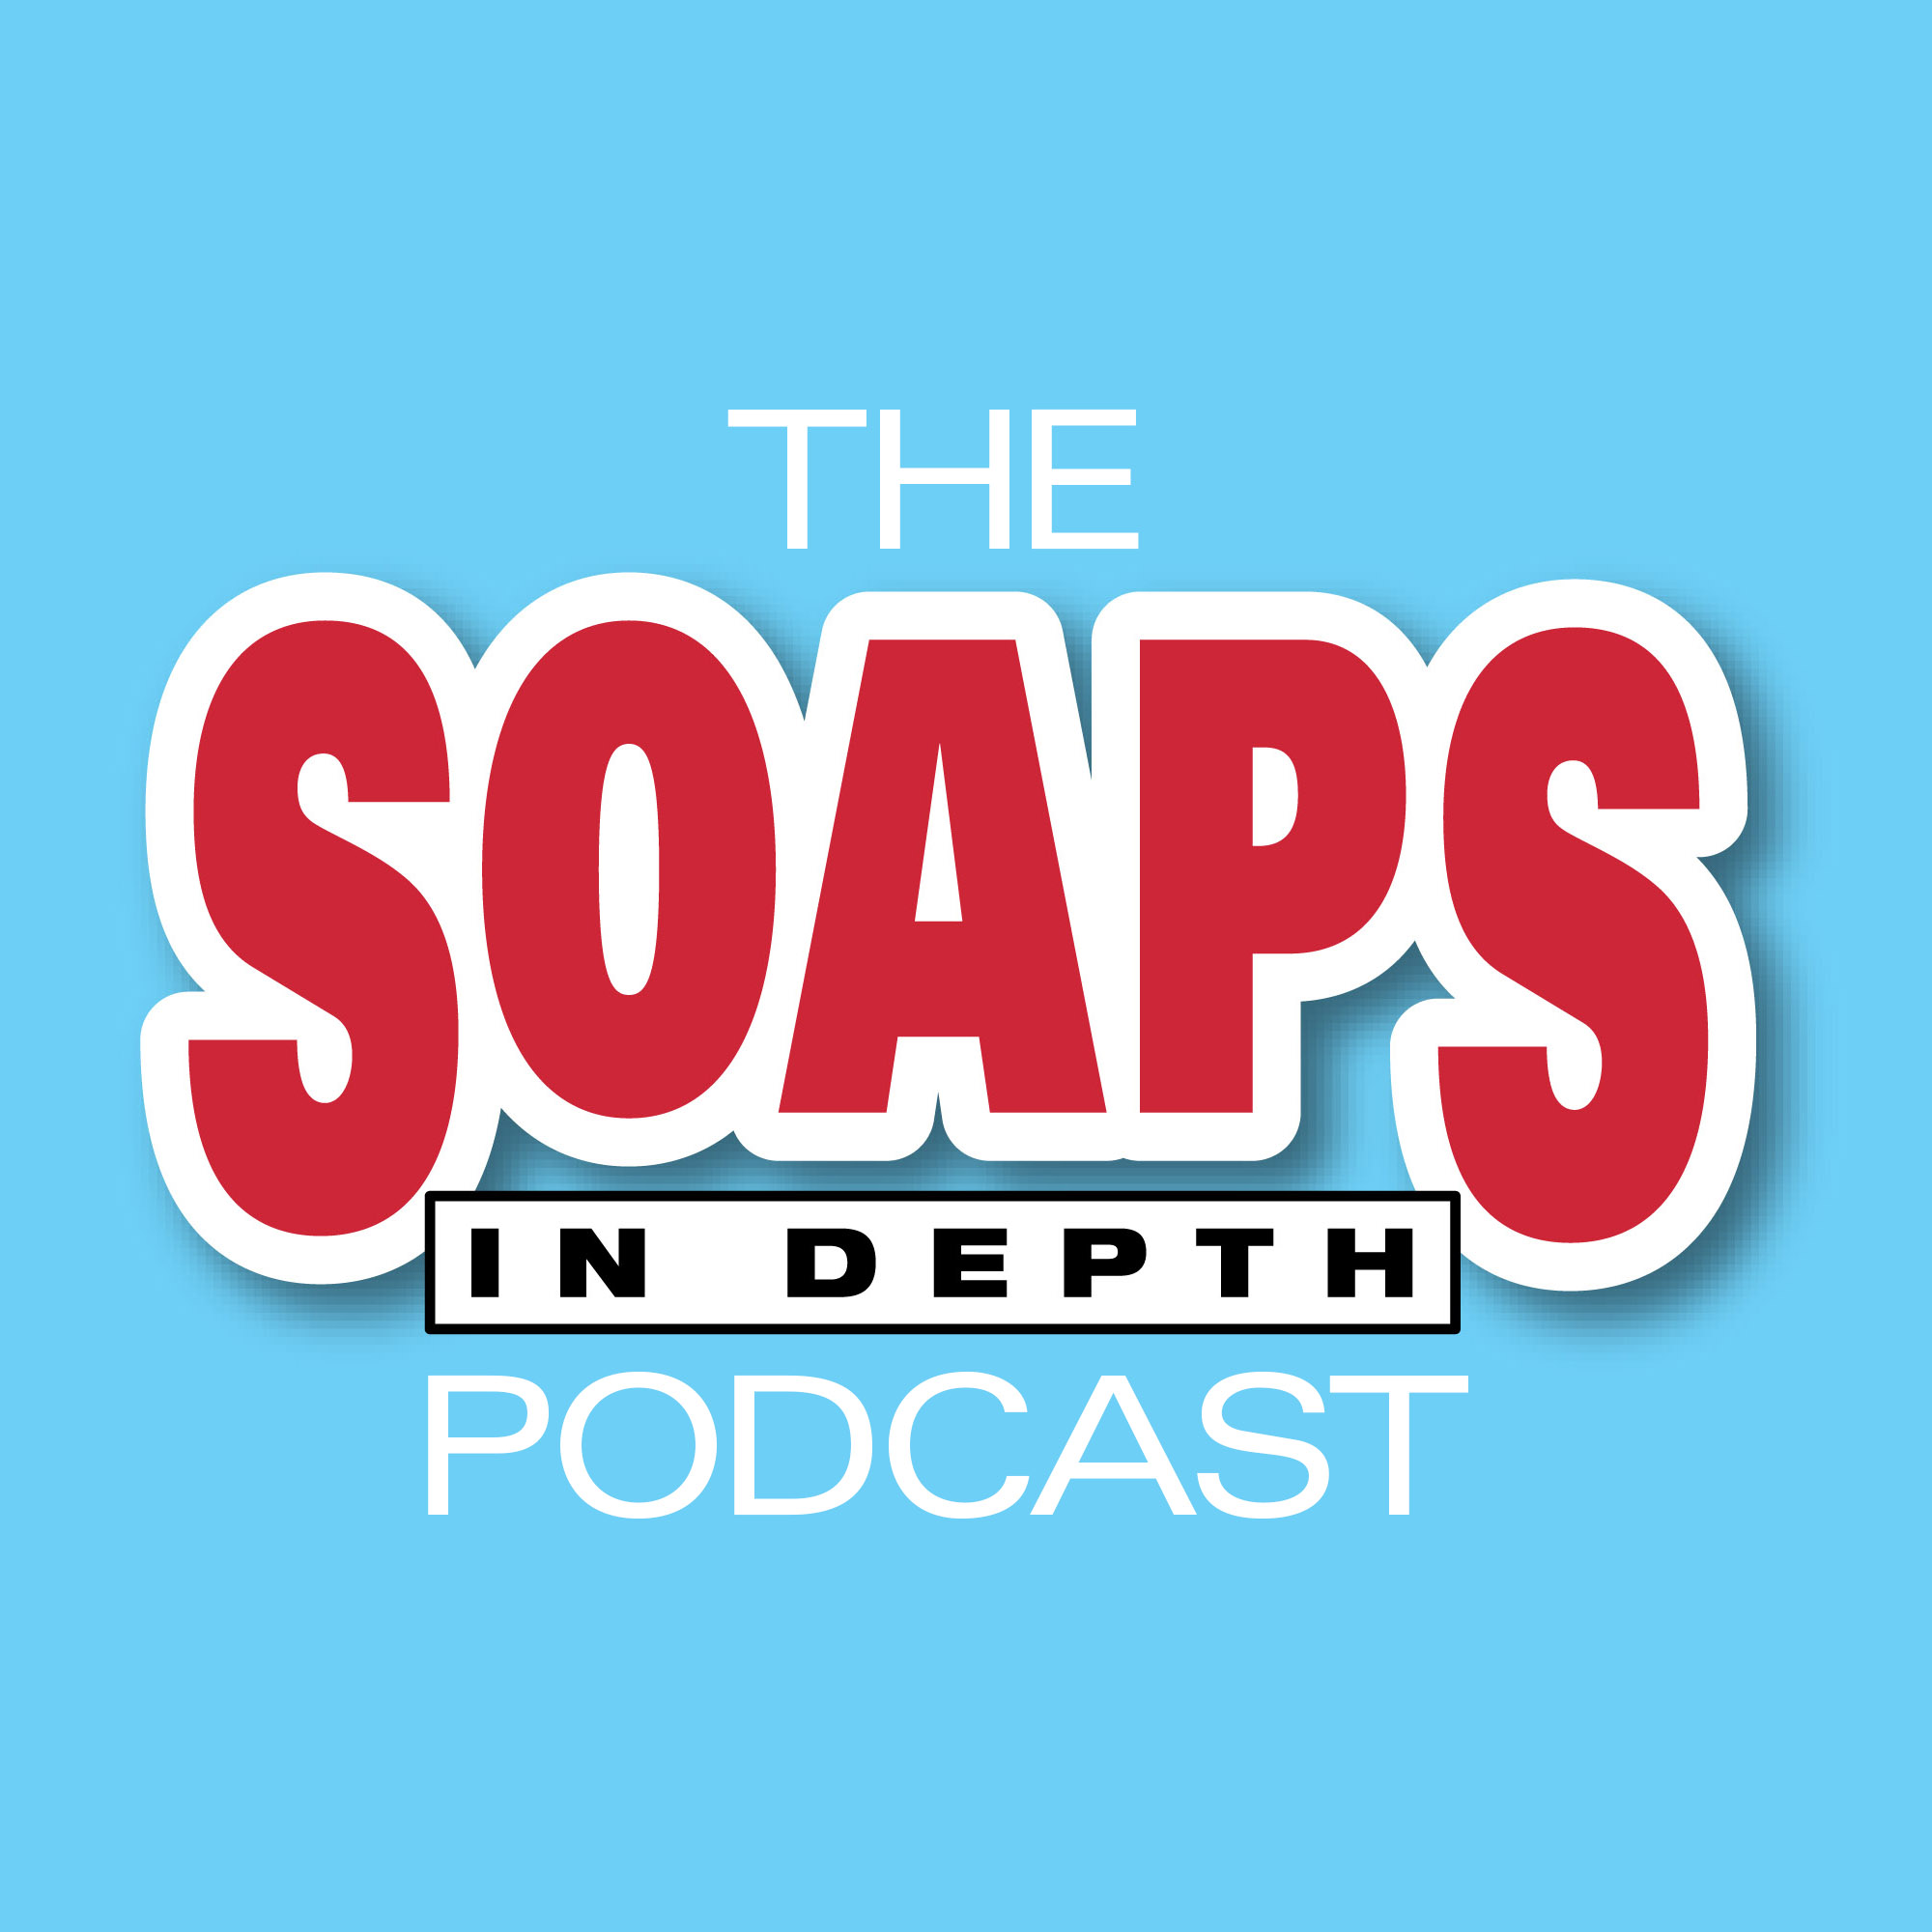 The Soaps In Depth Podcast show art